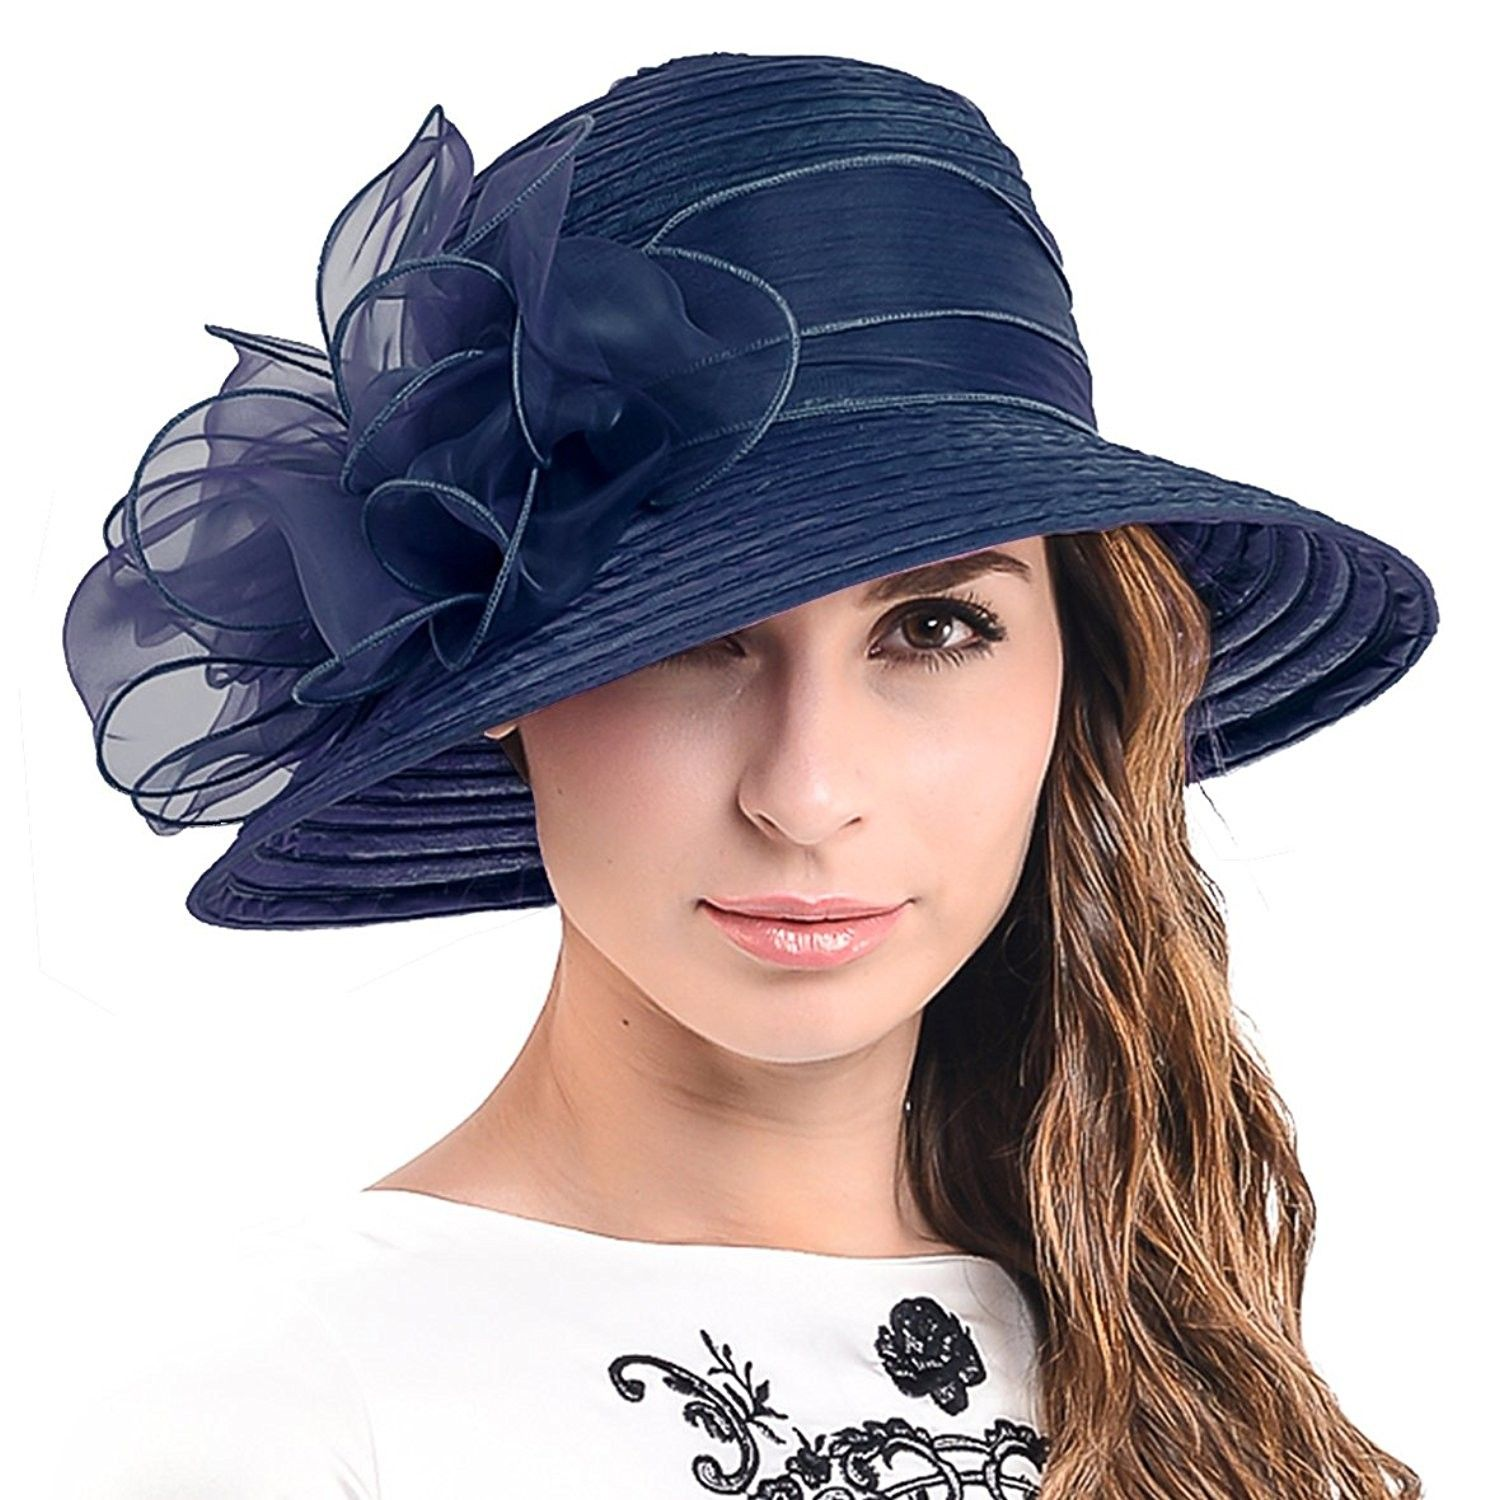 663af252386f1 FORBUSITE Ascot Kentucky Derby Bowler Church Cloche Hat Bowknot Organza  Bridal Dress Cap S051 - Navy - CT12F2NEVBZ - Hats   Caps